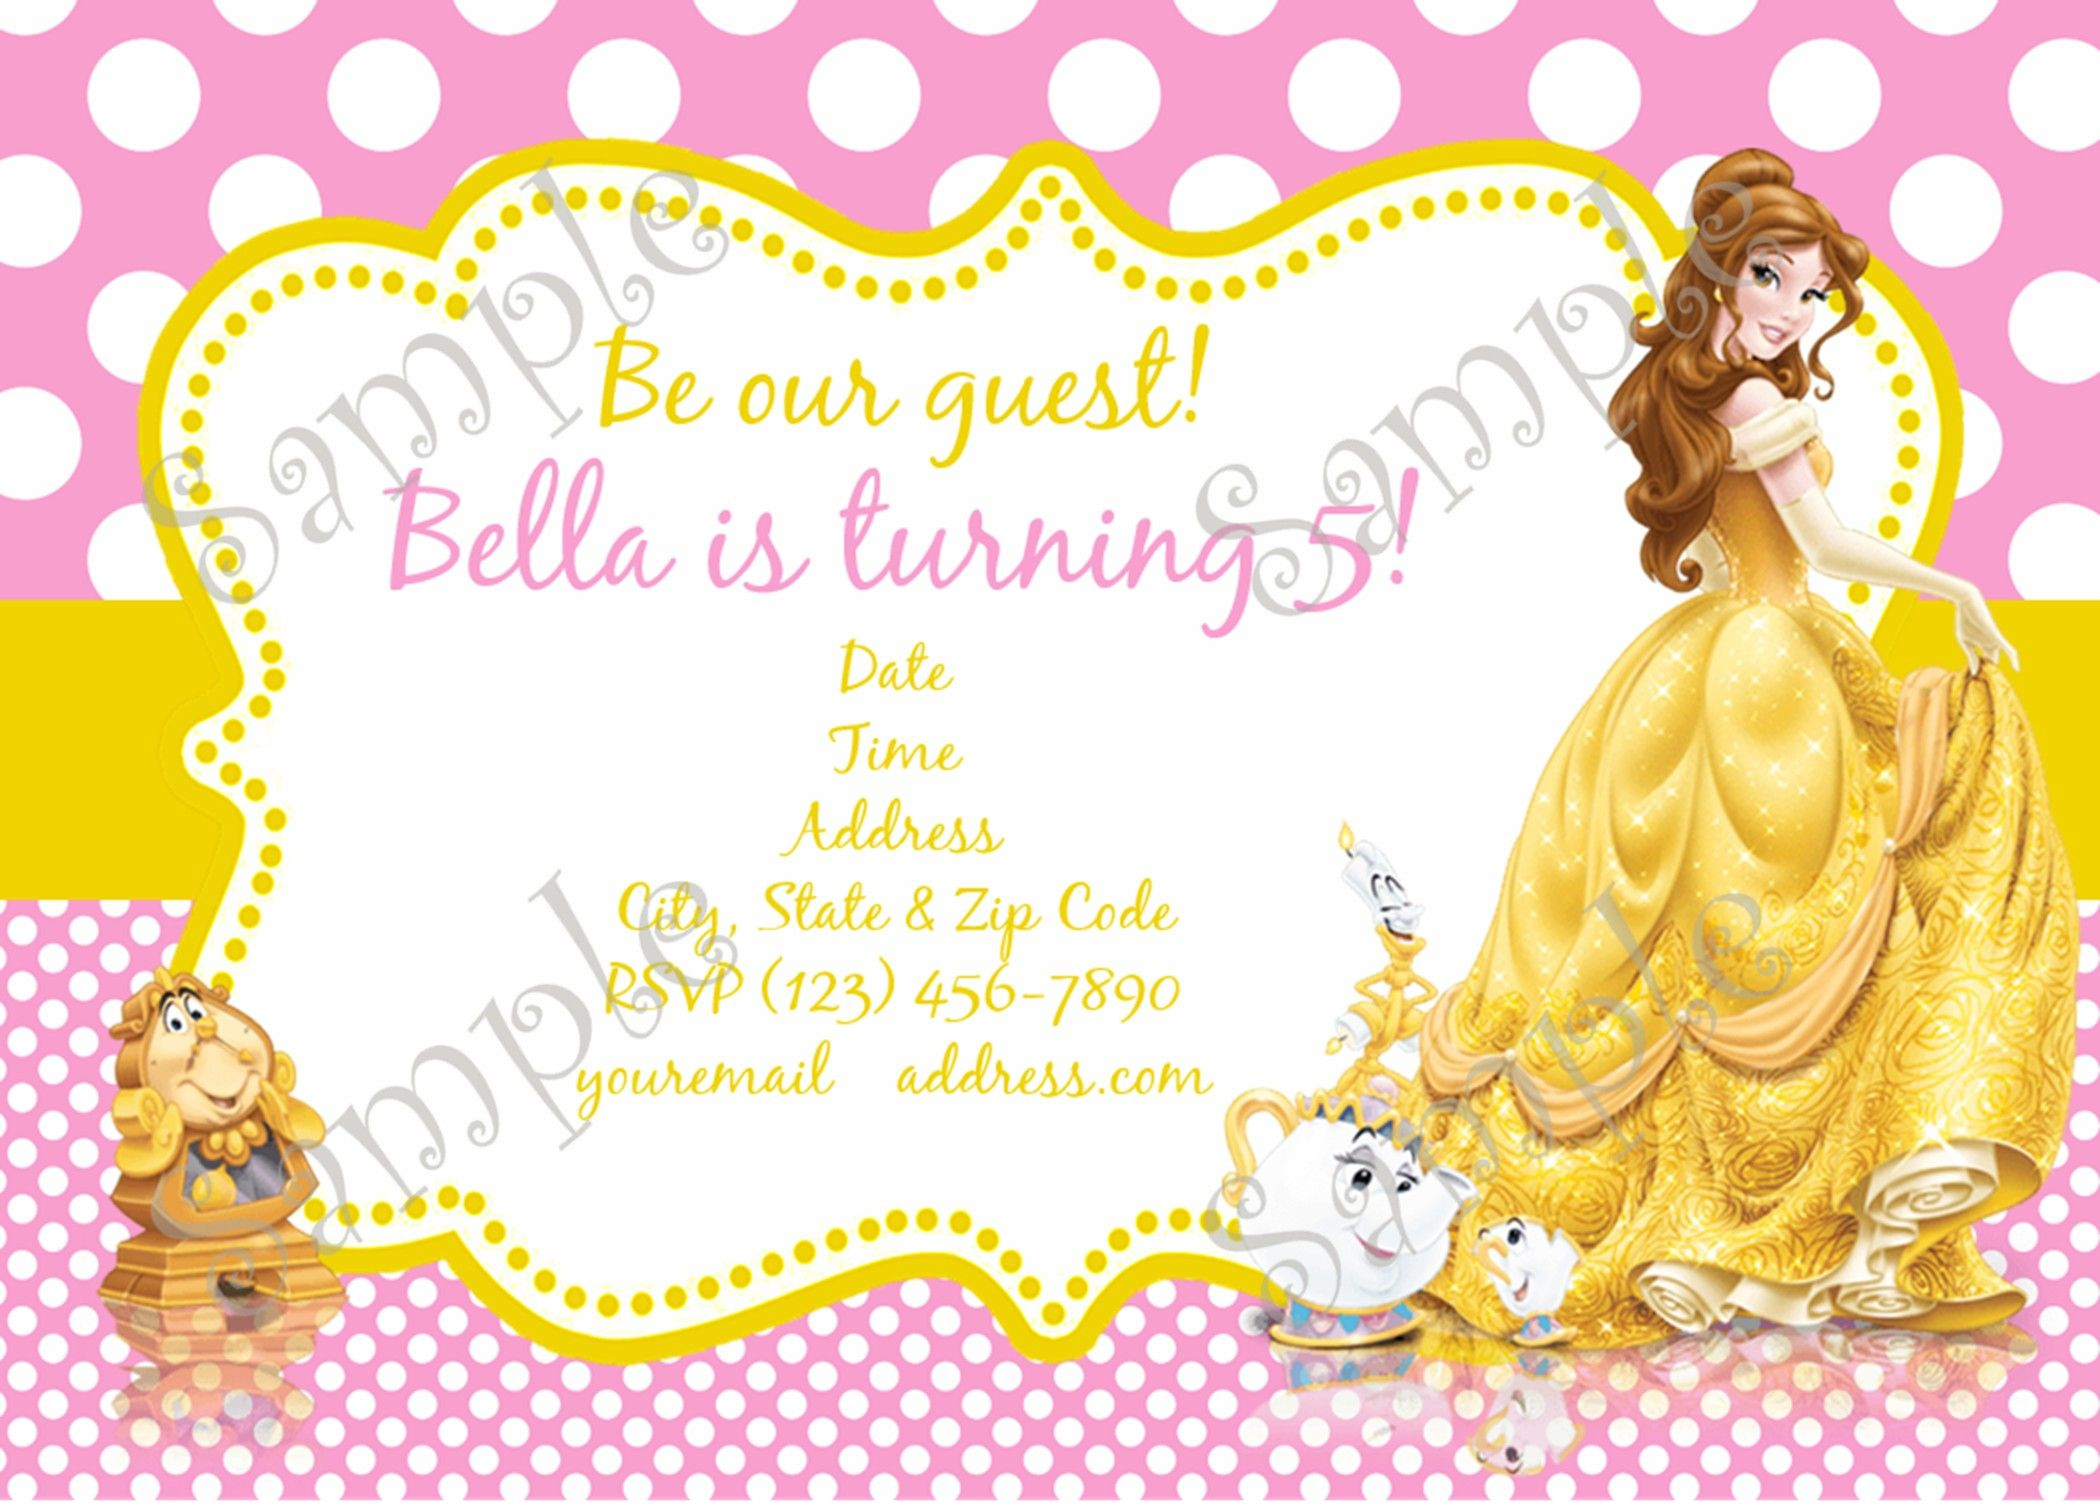 9 best images about Beauty and the Beast party Princess Belle – Beauty and the Beast Party Invitations